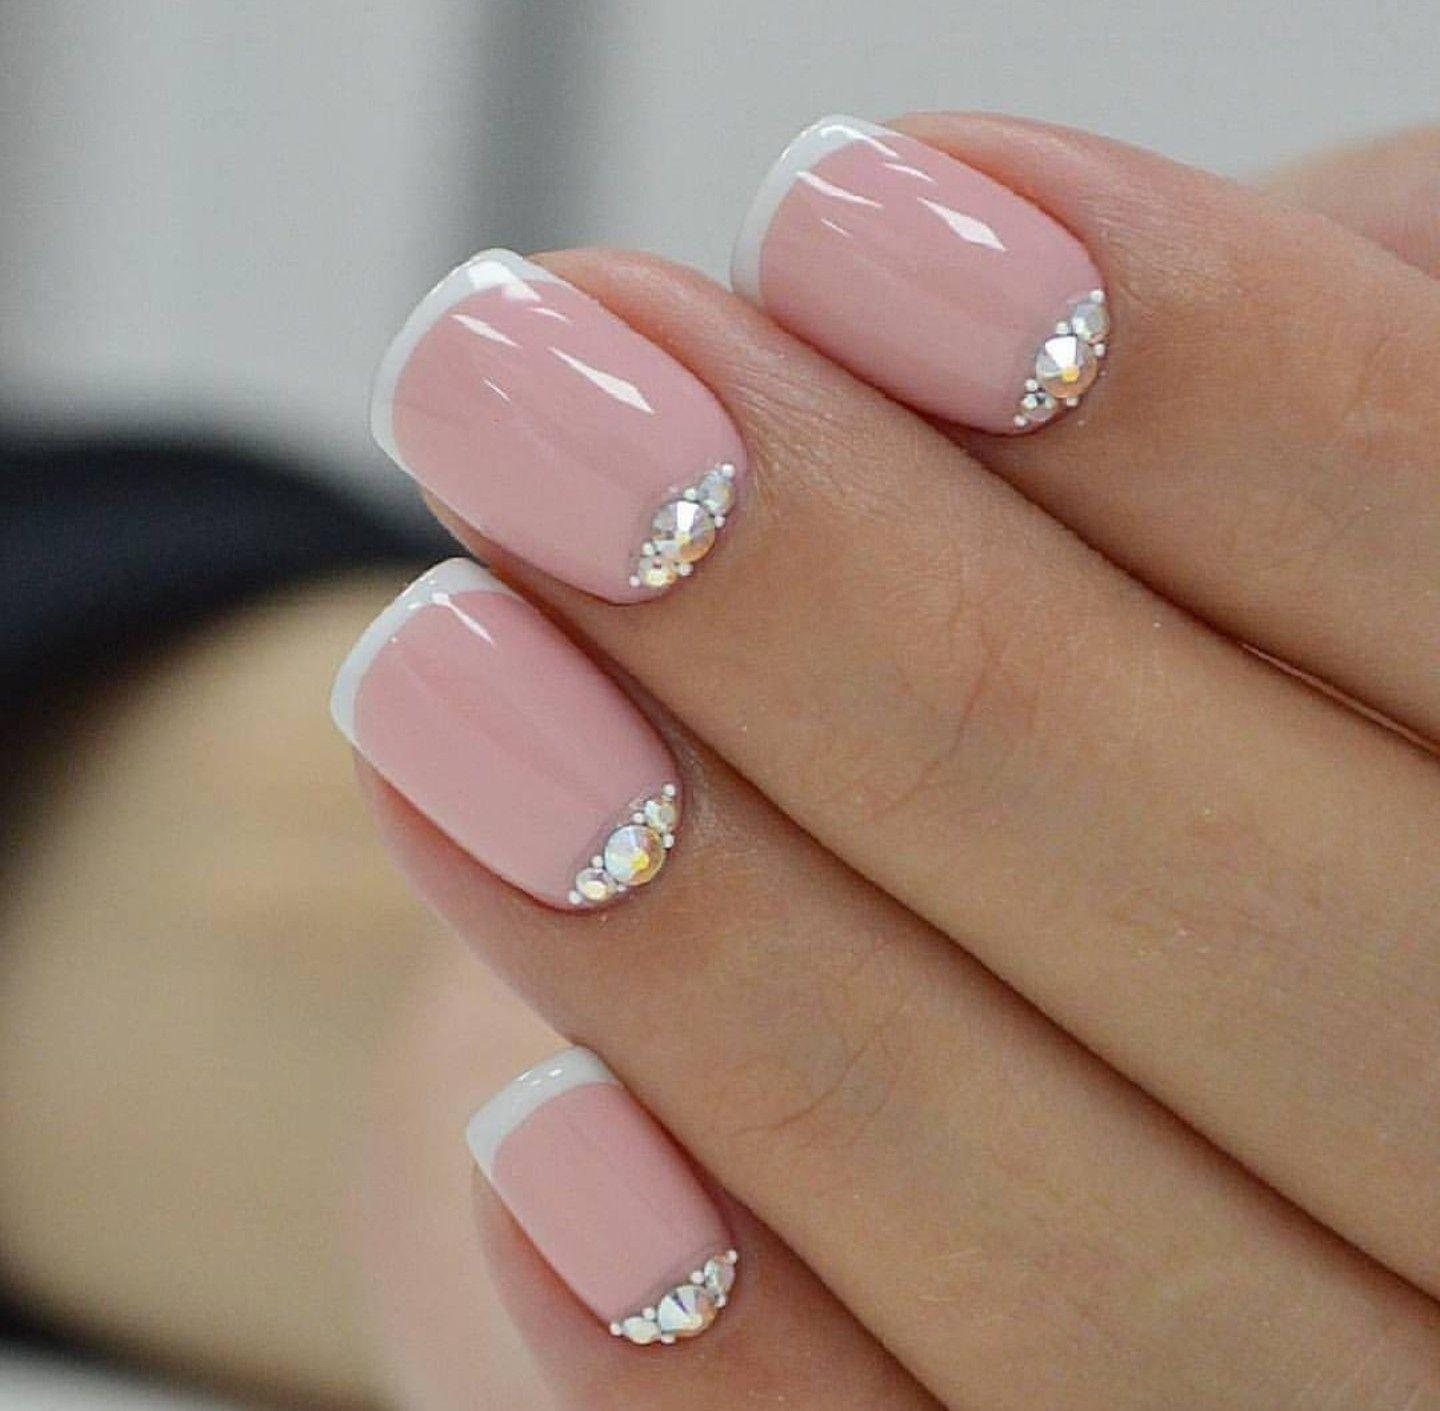 Fetish french manicure nail picture